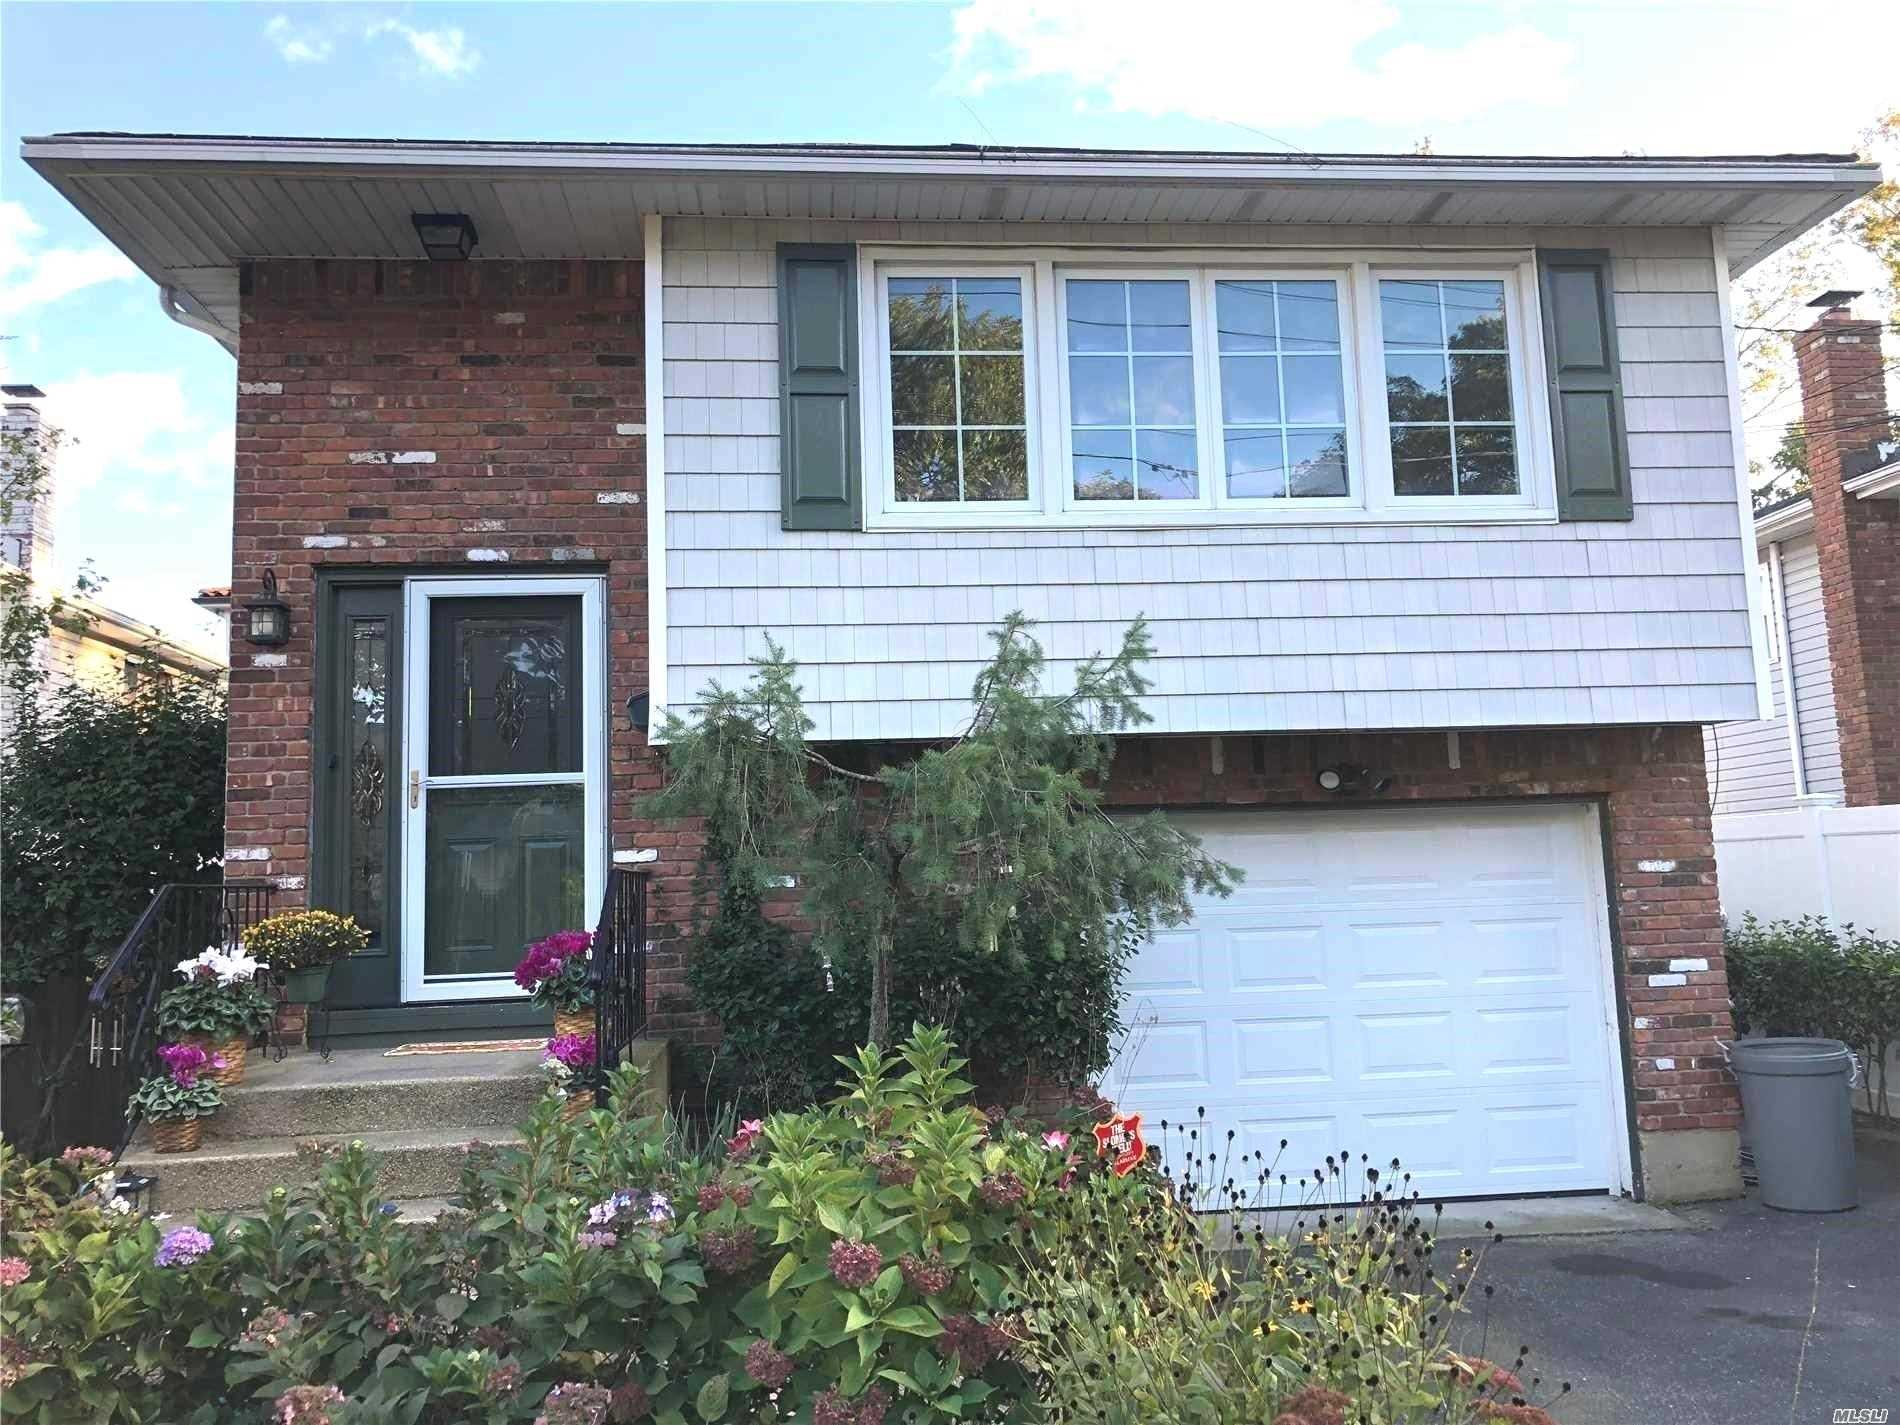 Beautiful, Spacious Split Hi-Ranch, With A Living Room, Dining Room, Family Room. 3 Bedrooms Up And 1 Bedroom Down, 2 Full Bathrooms, And A Laundry Room With A Large Laundry Folding Area. Short Walk To Oyster Bay And Centre Island Beach. Though Believed Accurate, All Info Must Be Independently Verified, Owner, Listing Agent & Broker Are Not Responsible For Any Inaccuracies.